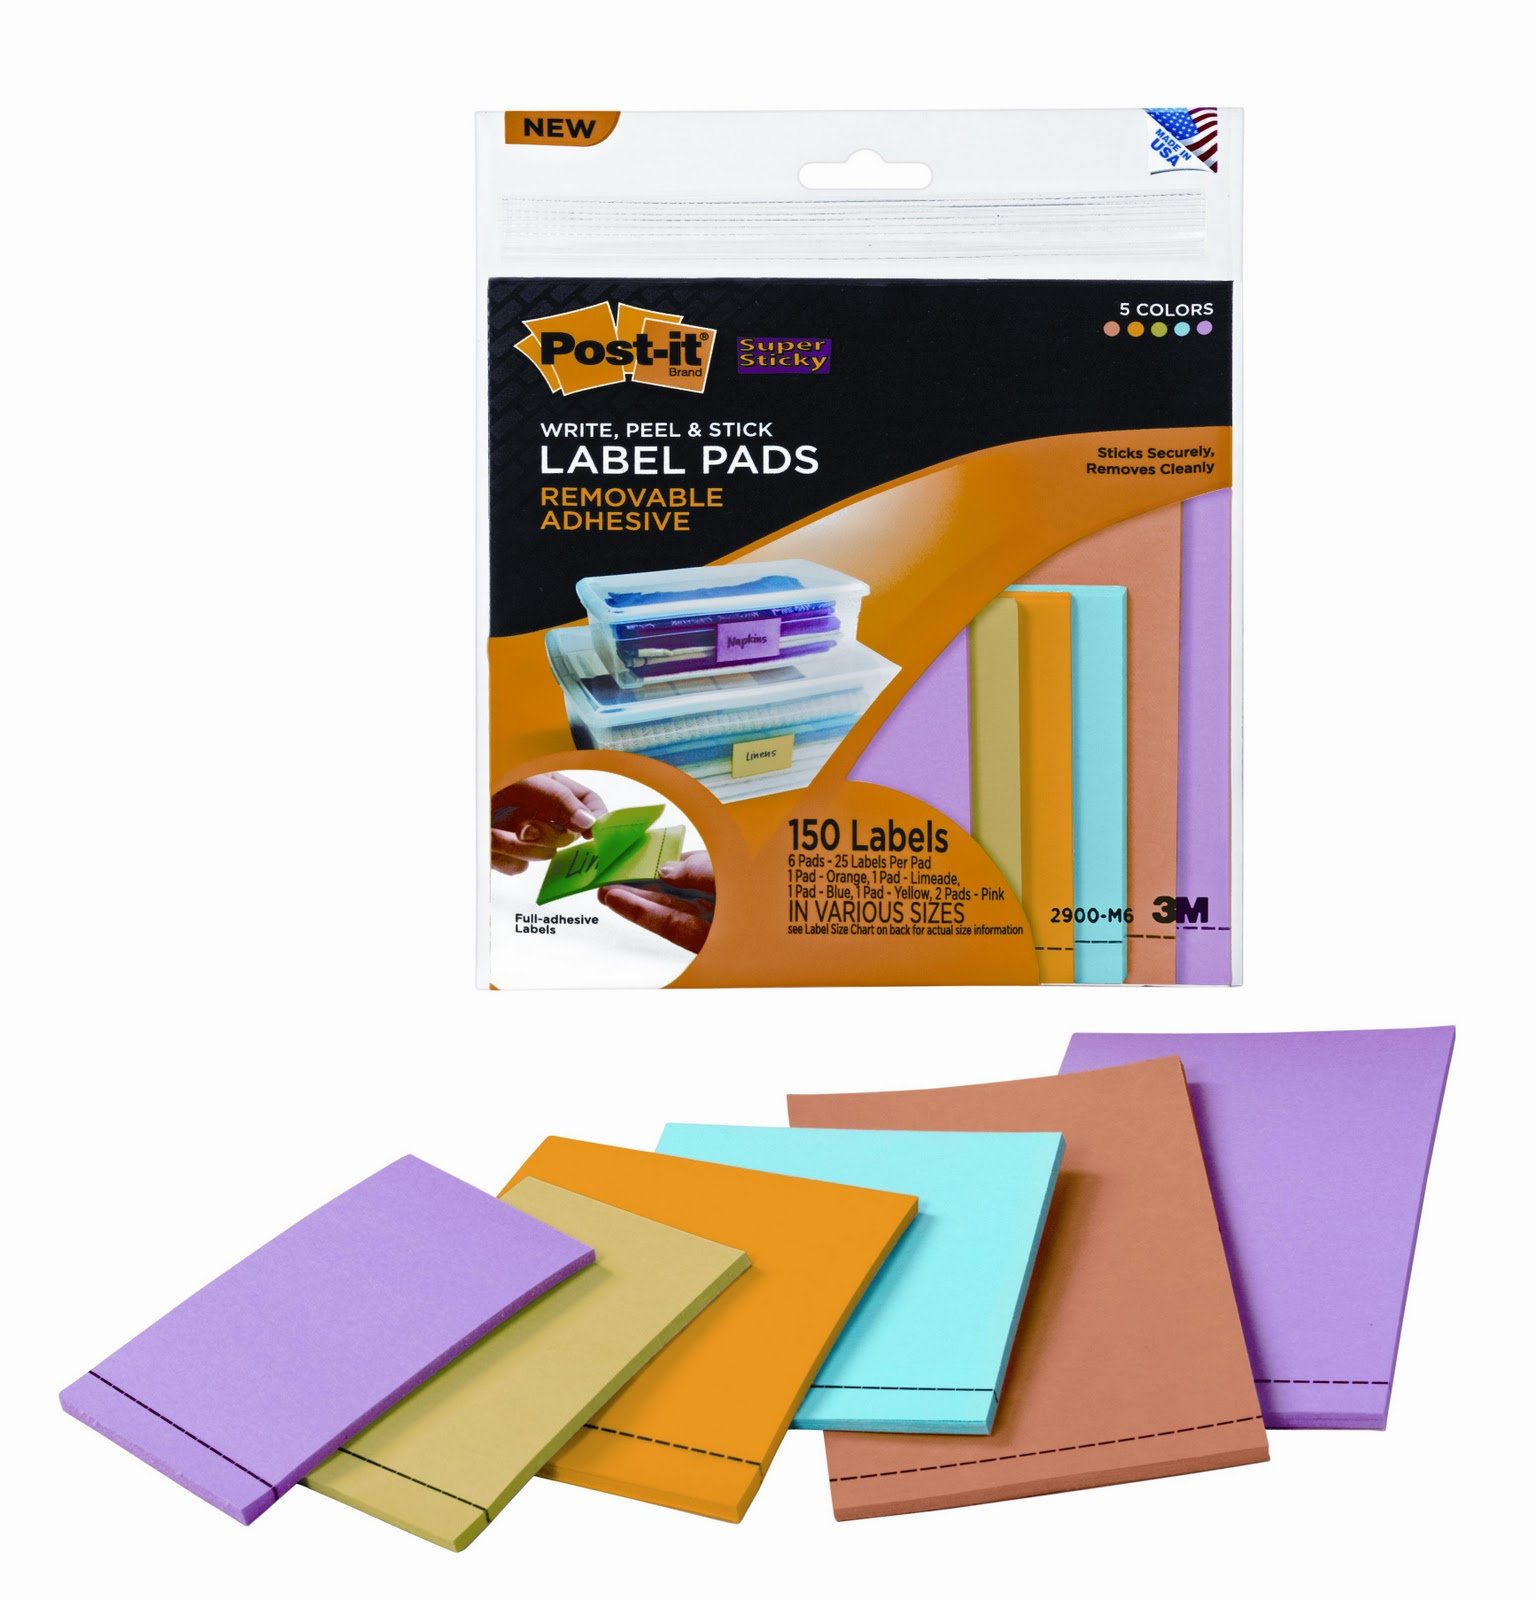 This is an image of Accomplished Post It Full Adhesive Label Pads